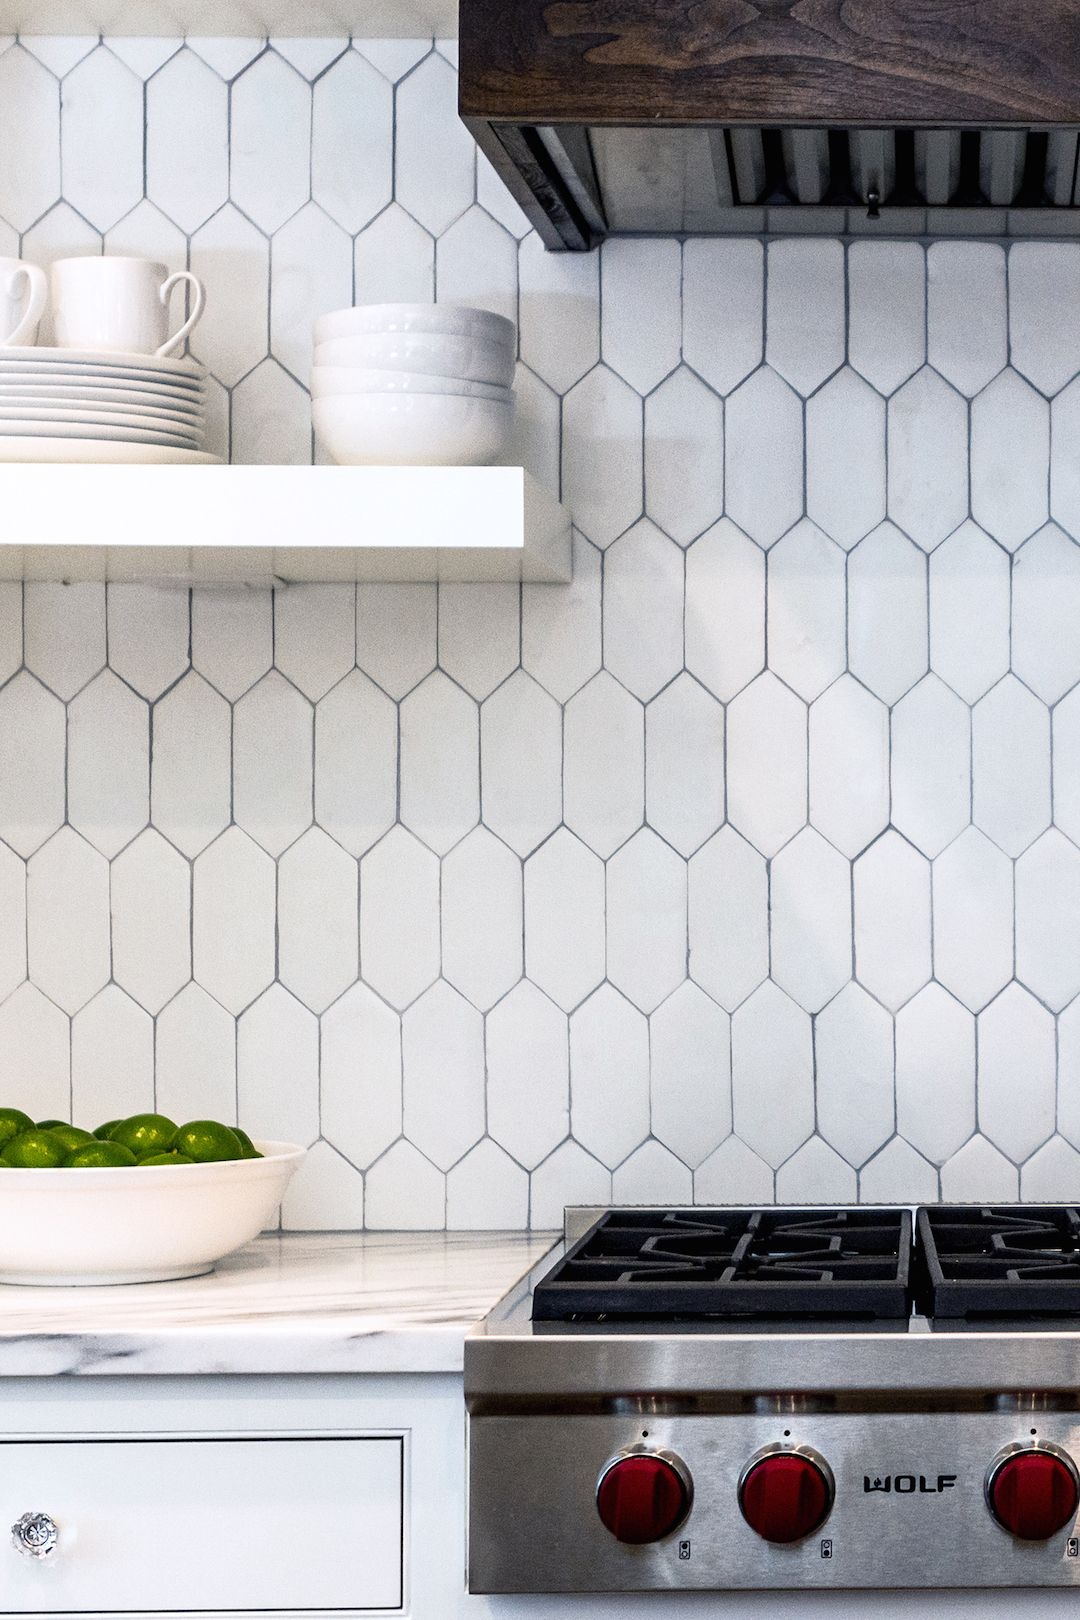 Exciting New Tile Trends For 2017 And A Few Old Favorites Here To Stay Kitchen Backsplash Tile Trends Kitchen Remodel